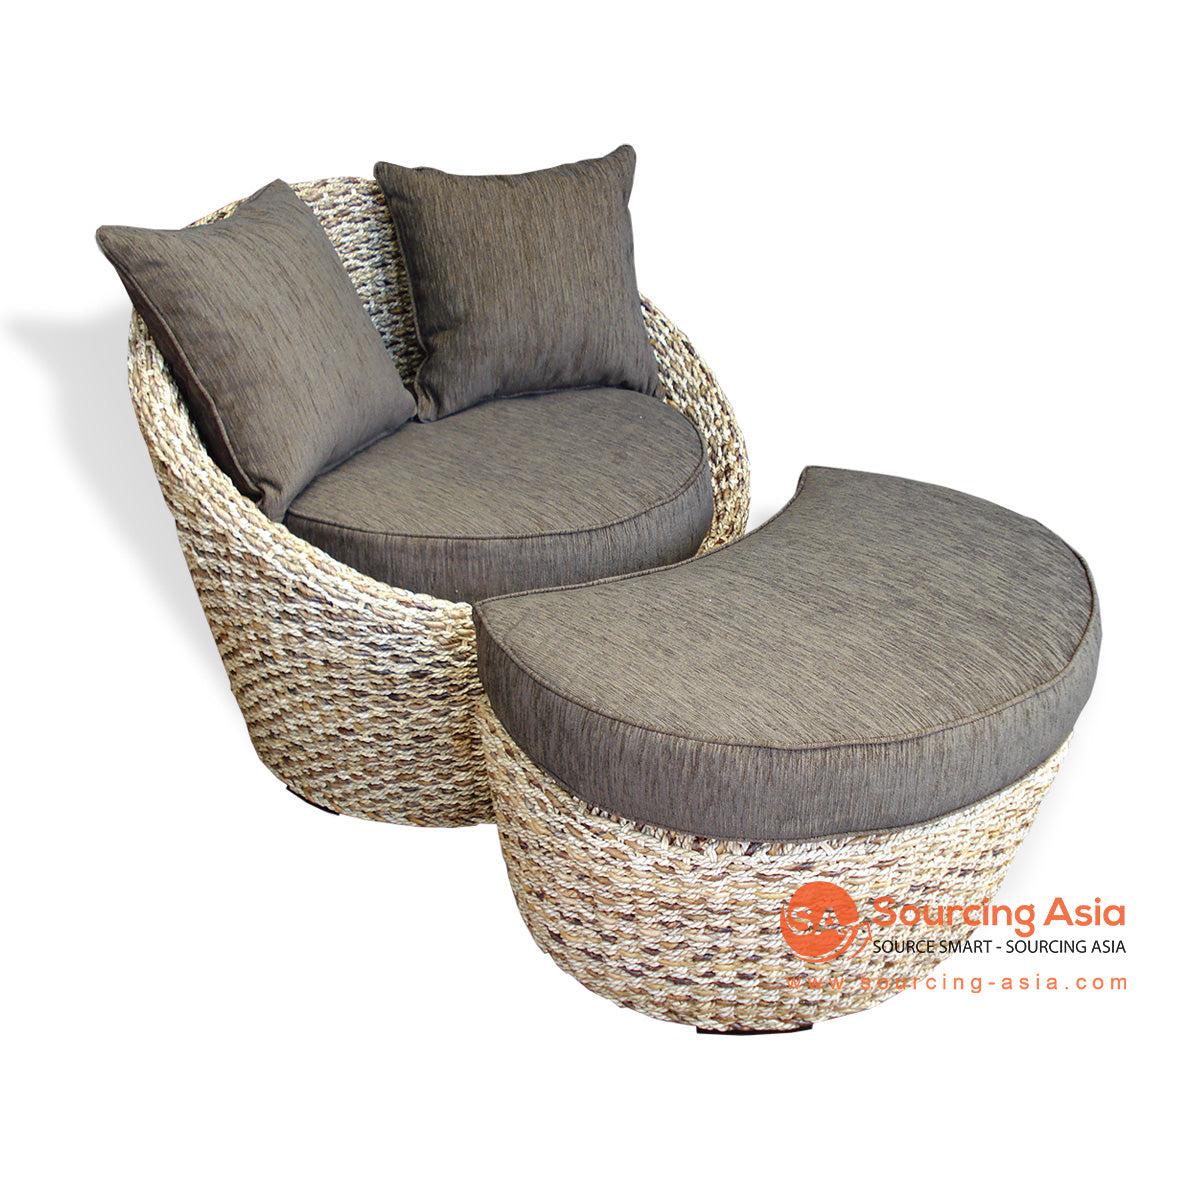 IMALSRF054 RATTAN CASUAL CHAIR AND FOOT STOOL SET